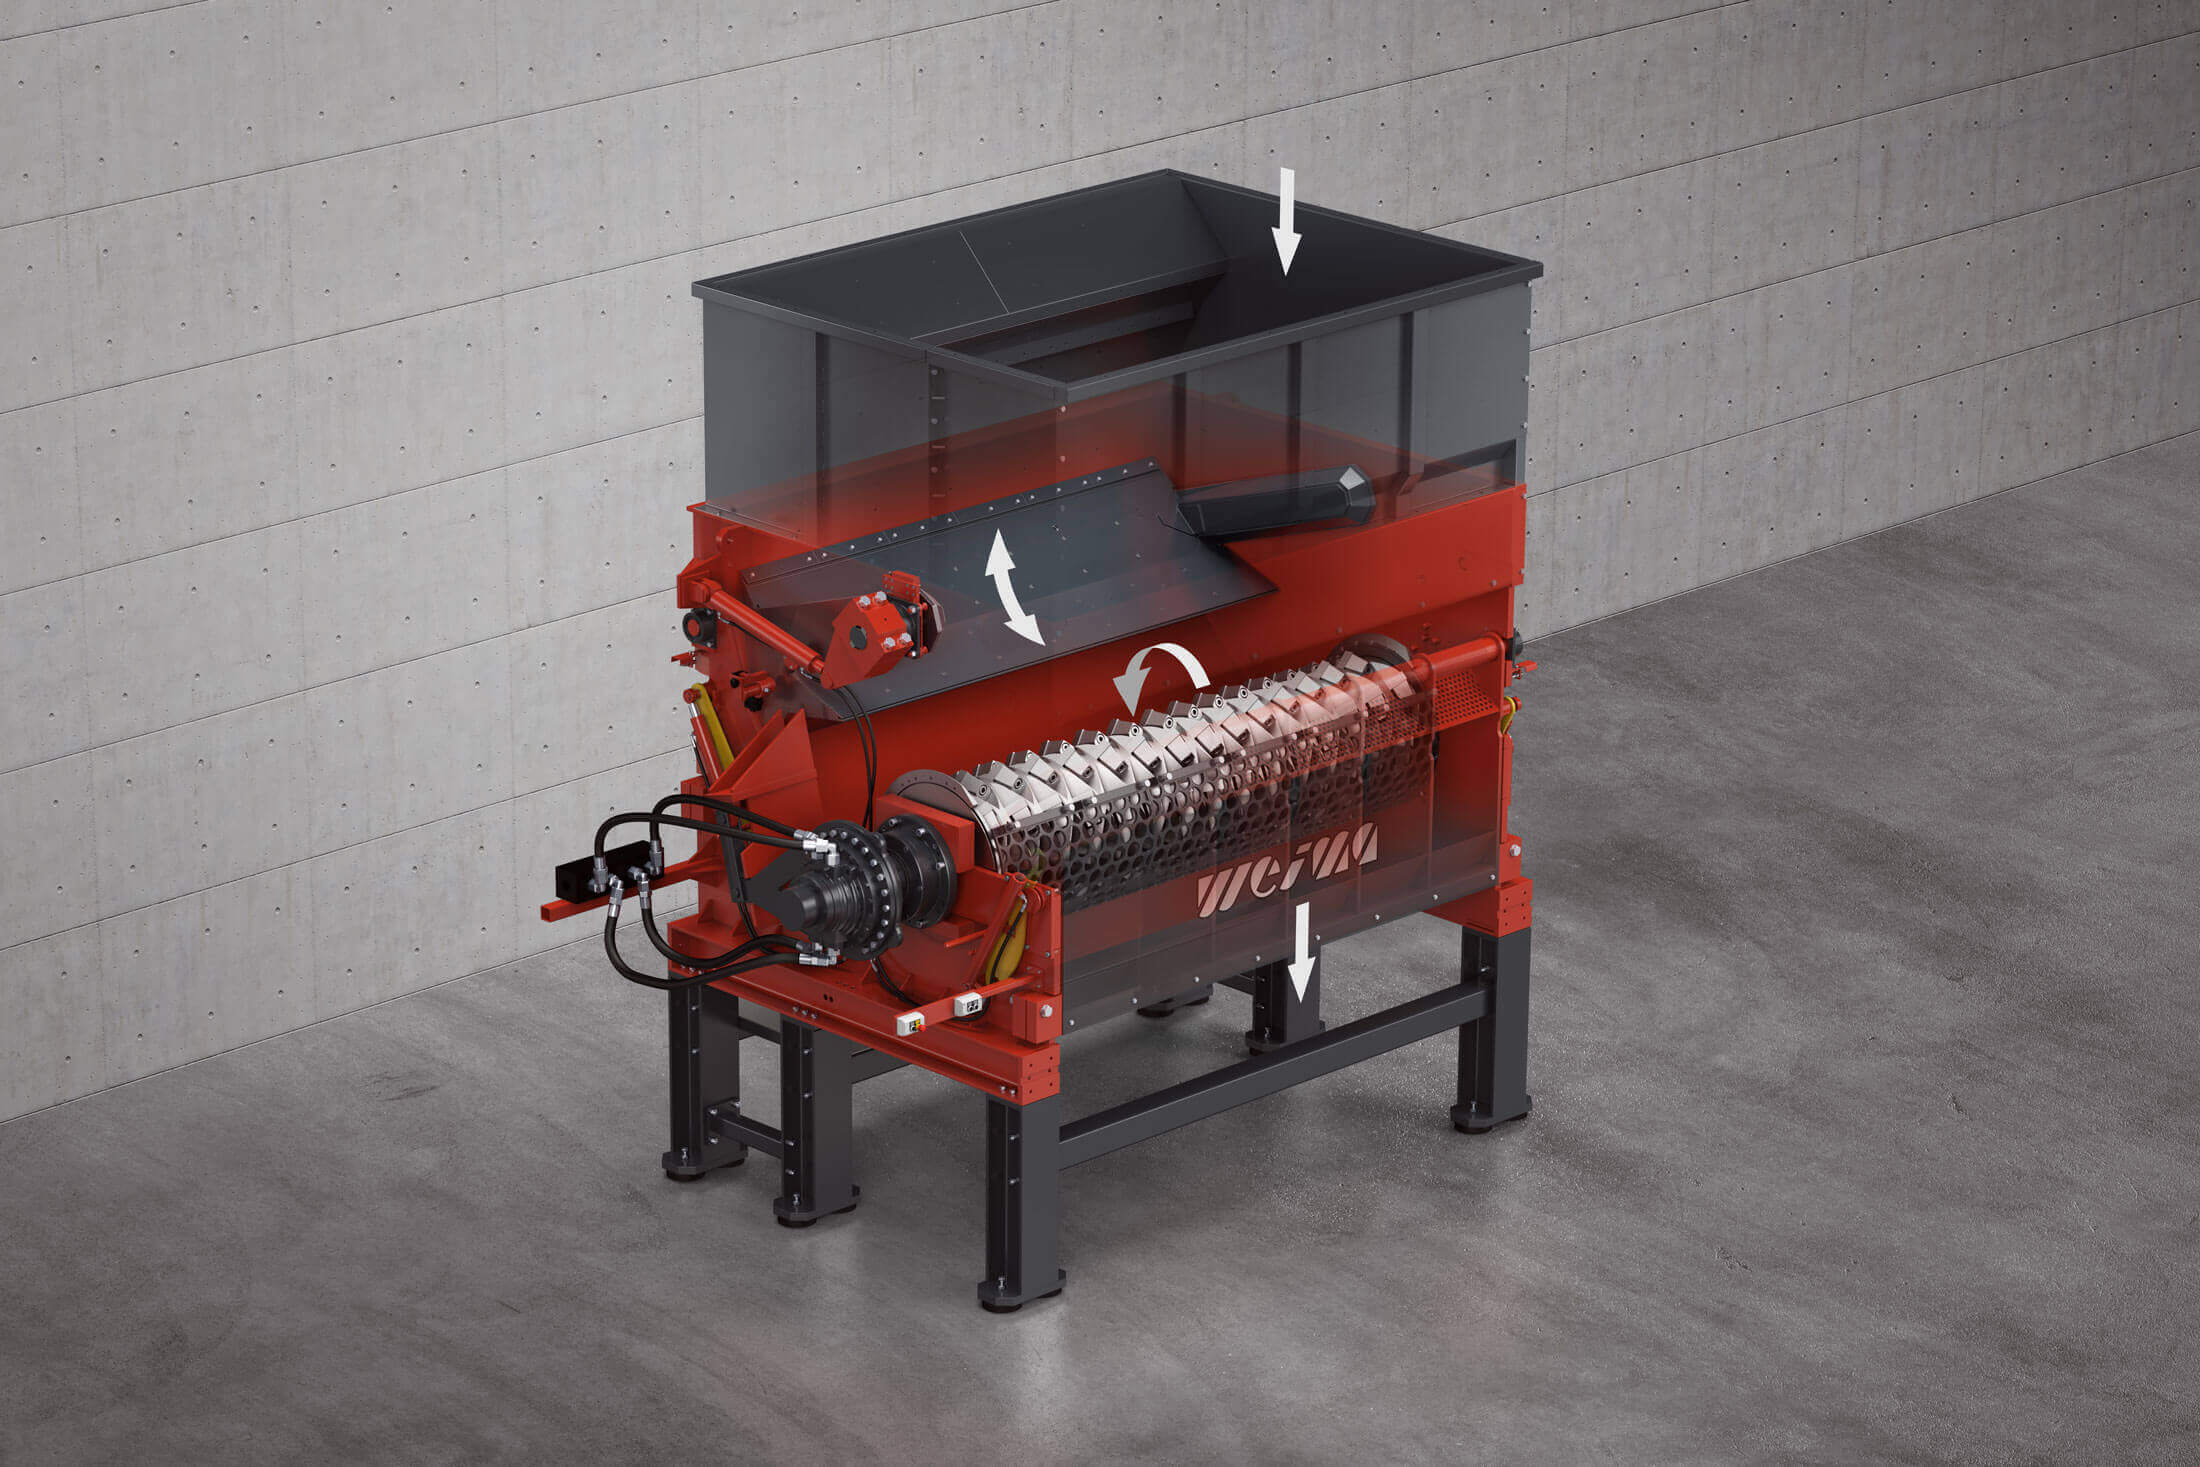 Rendered image of WEIMA PowerLine 3000 single-shaft shredder with X-Ray view of the machine components